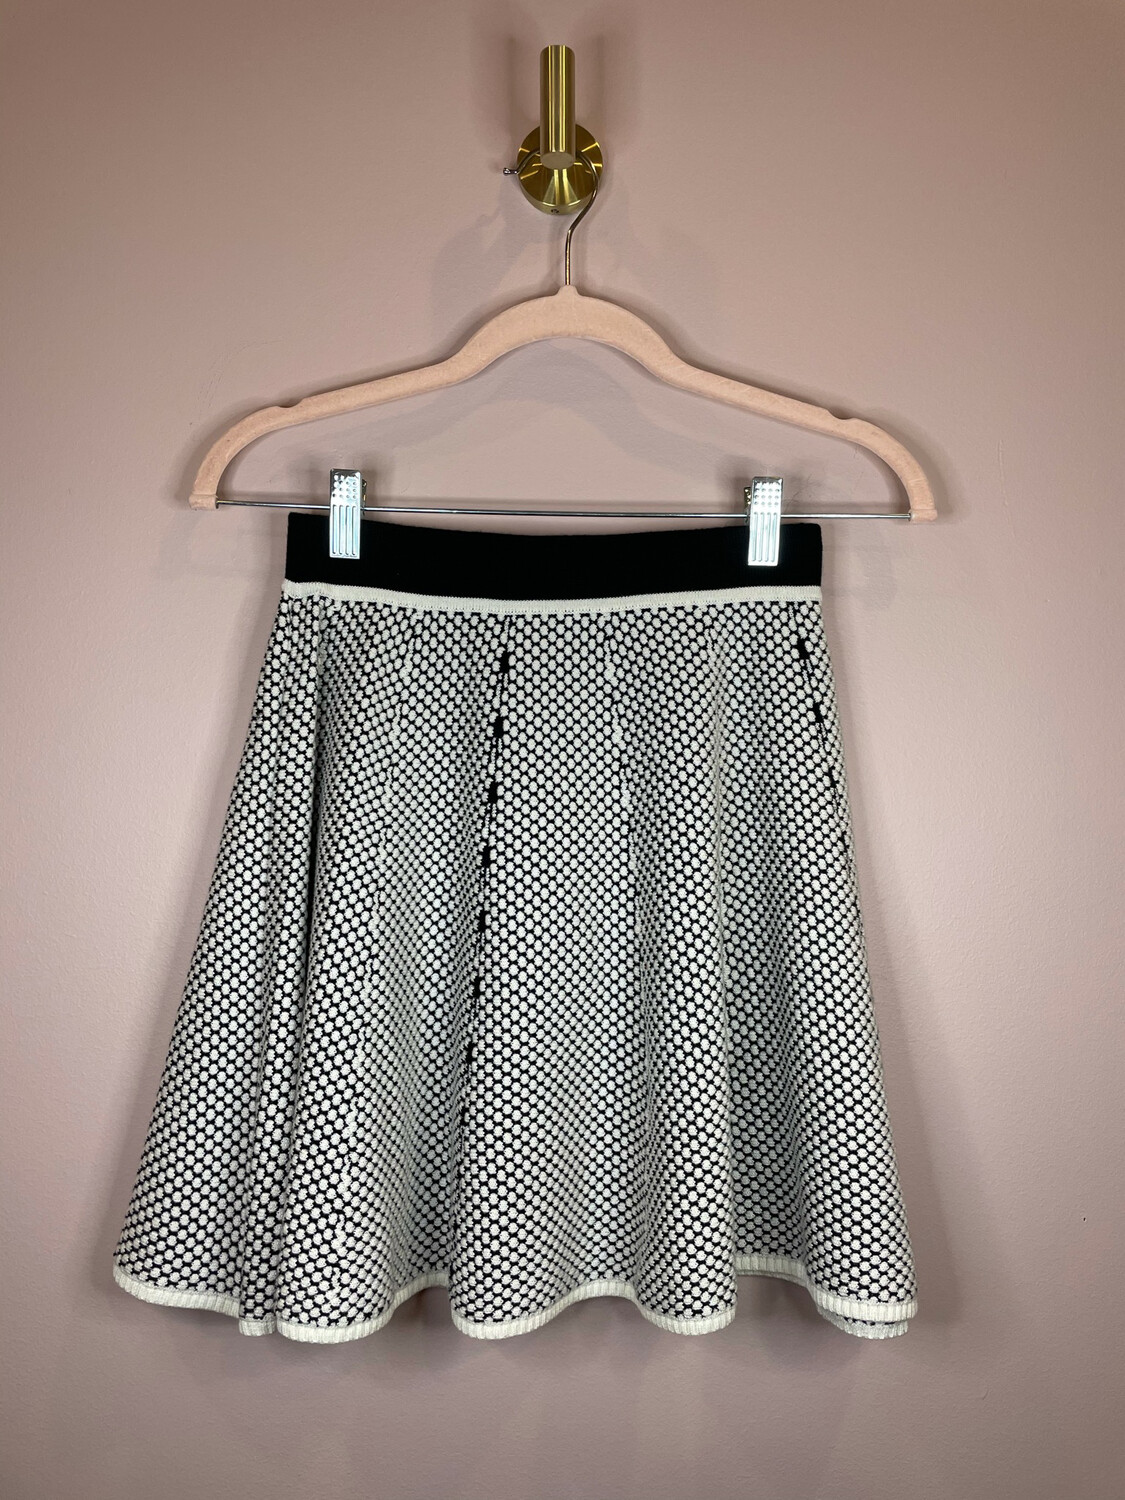 Lucy Paris Black & White Dot Skater Skirt - S